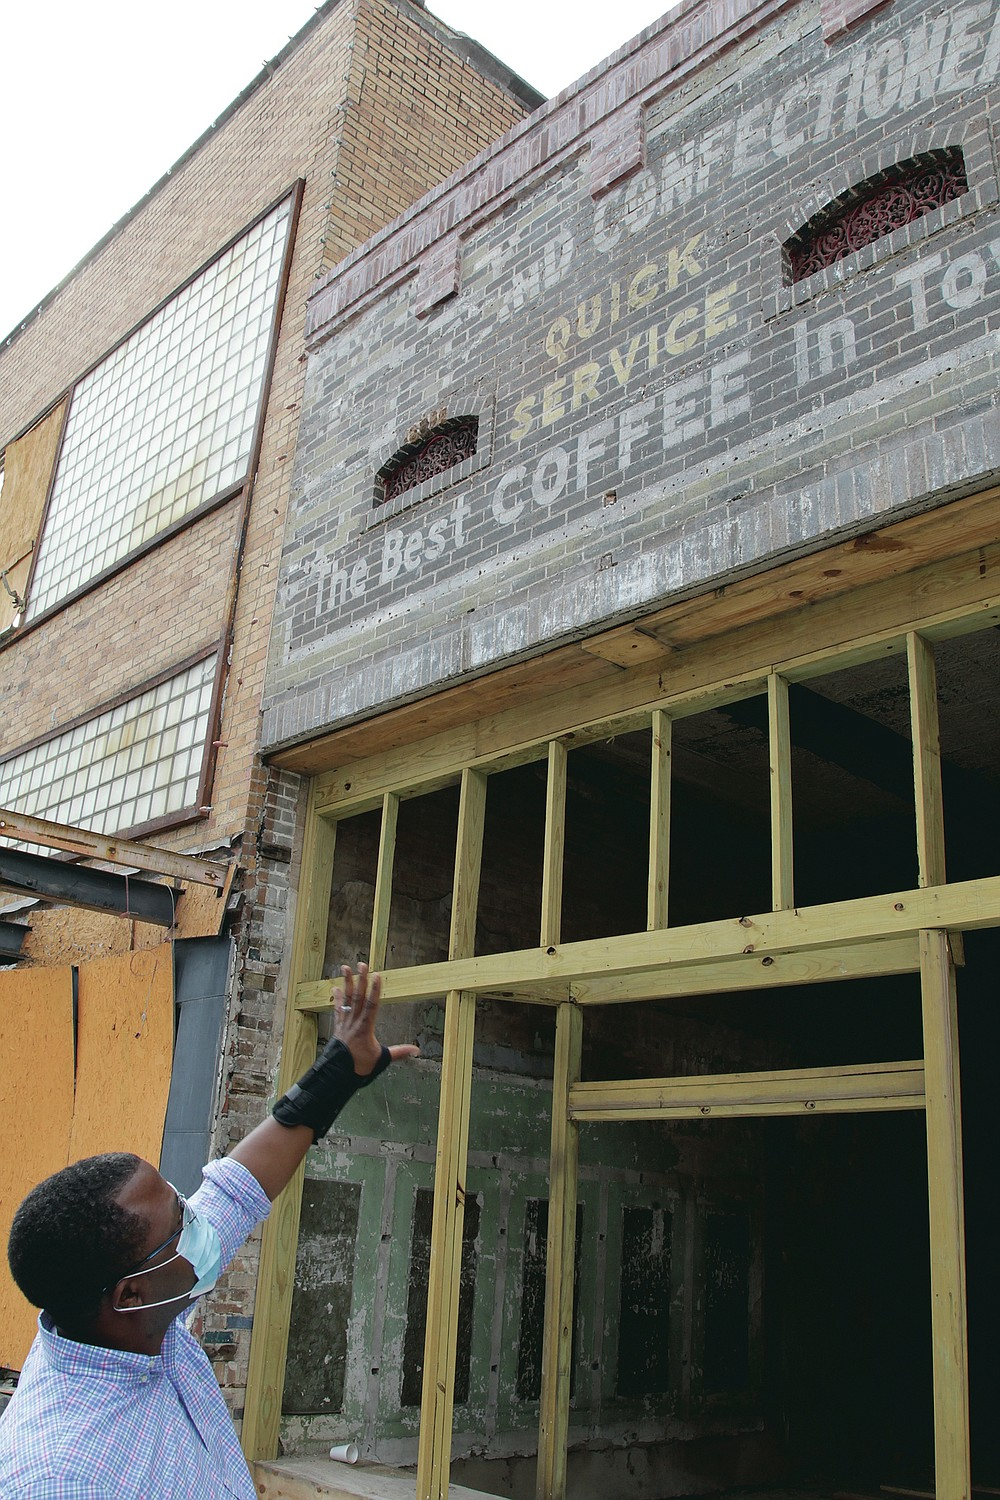 """Maurice Taggart points to the signage that was revealed when the facade was removed from the facing of the building at 324 Main St. """"I told them the leave it up there,"""" Taggart said. """"I like the historical authenticity that it gives the building."""" (Pine Bluff Commercial/Dale Ellis)"""